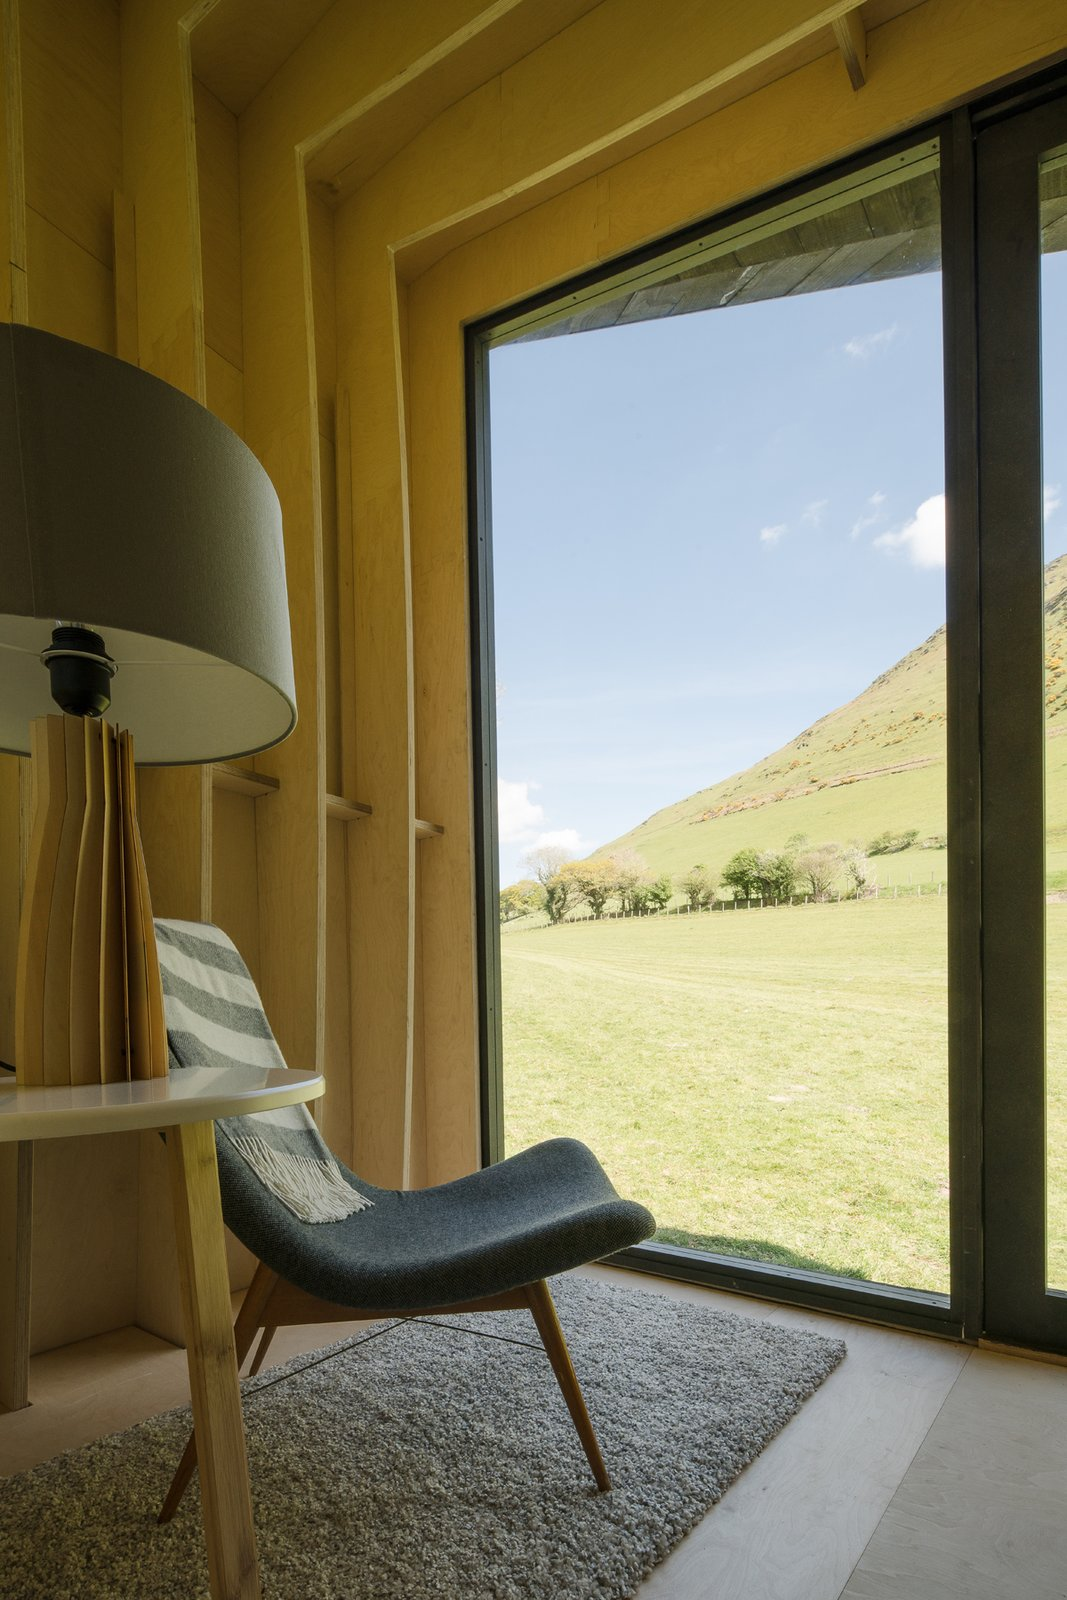 Photo 6 of 11 in Tour One of Epic Retreat's Tiny Pop-Up Hotel Cabins in the Welsh Countryside